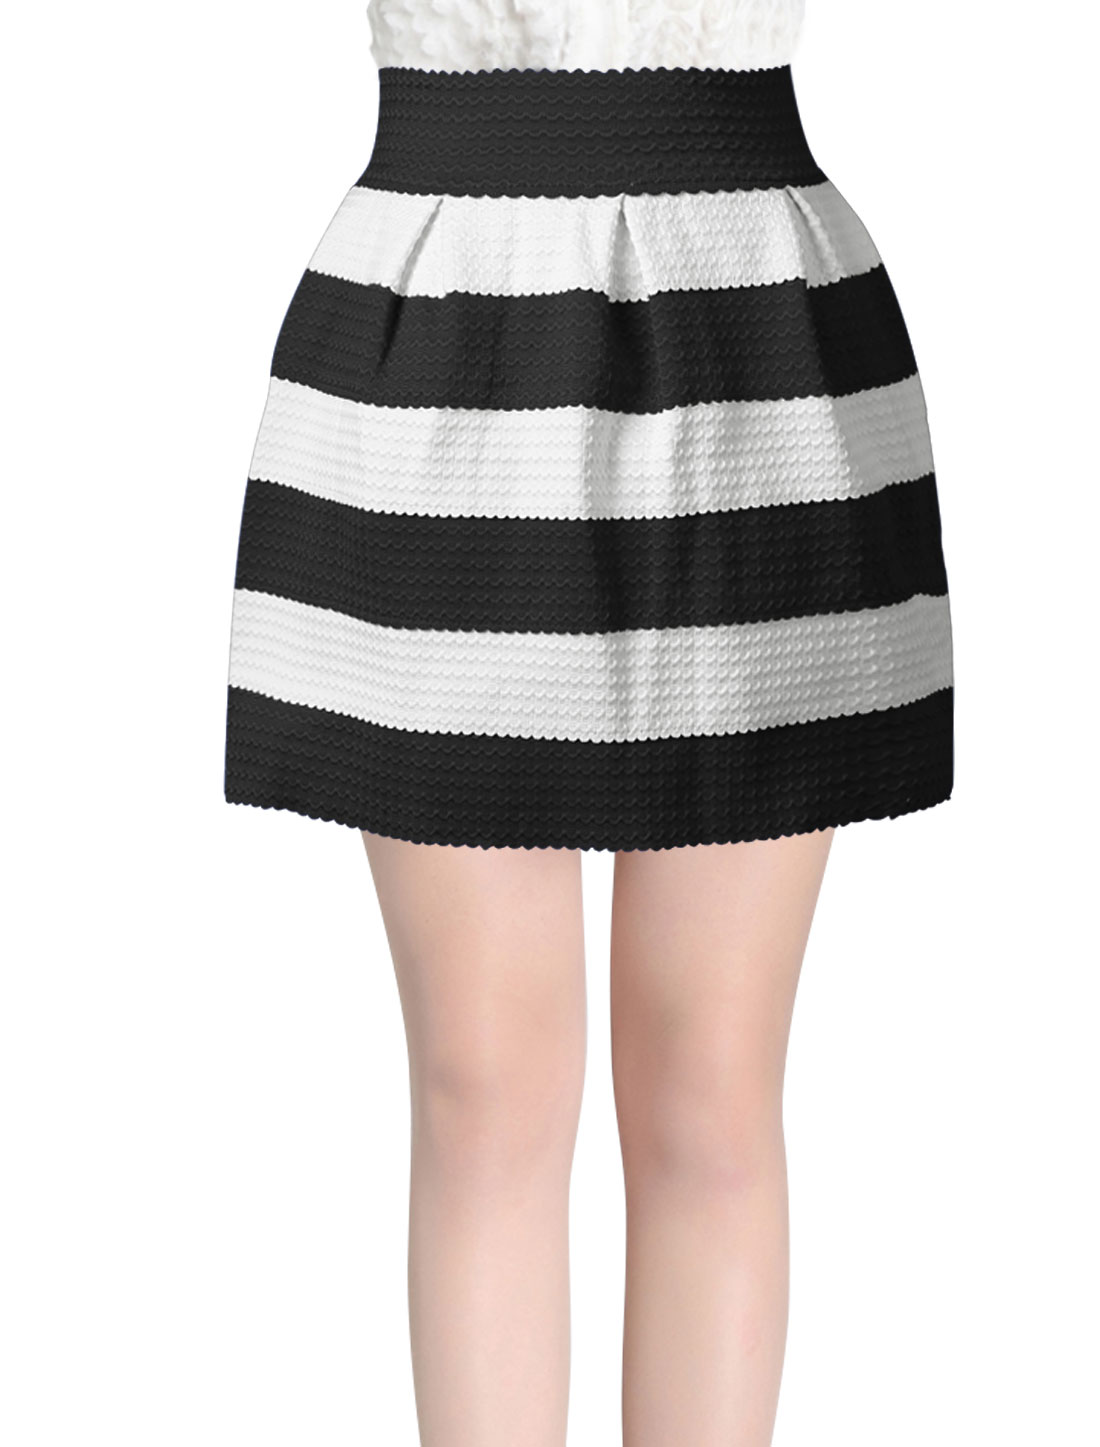 Women High Wasit Bar Striped Fashion Design Mini Skirt Black White XS